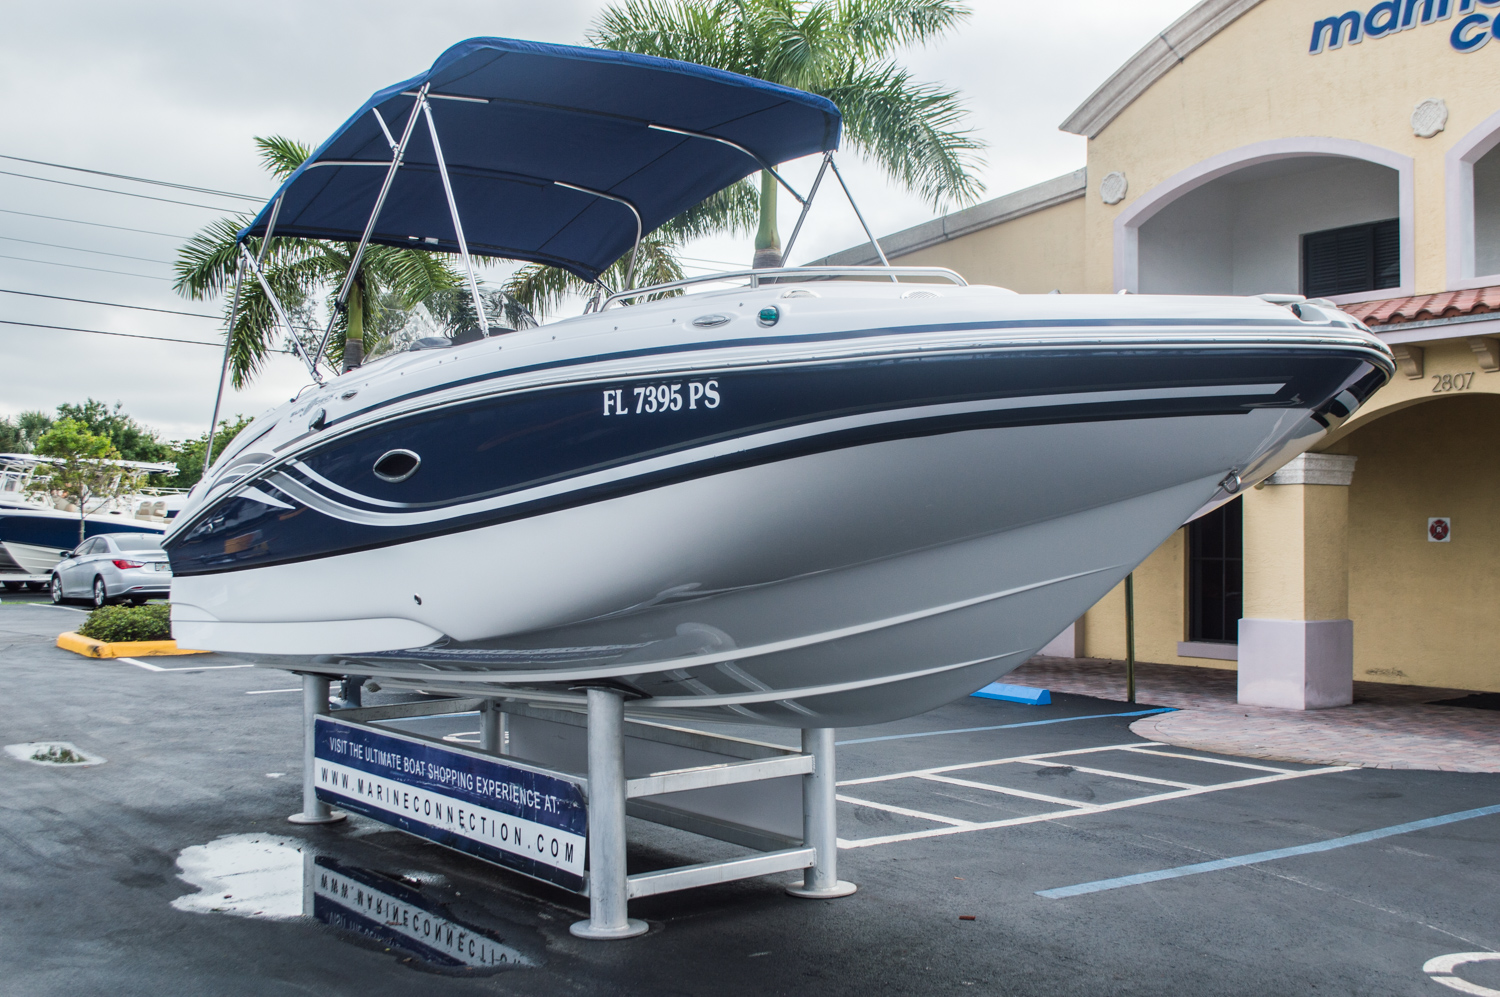 Used 2013 hurricane sundeck sport ss 220 ob boat for sale for Hurricane sundeck for sale